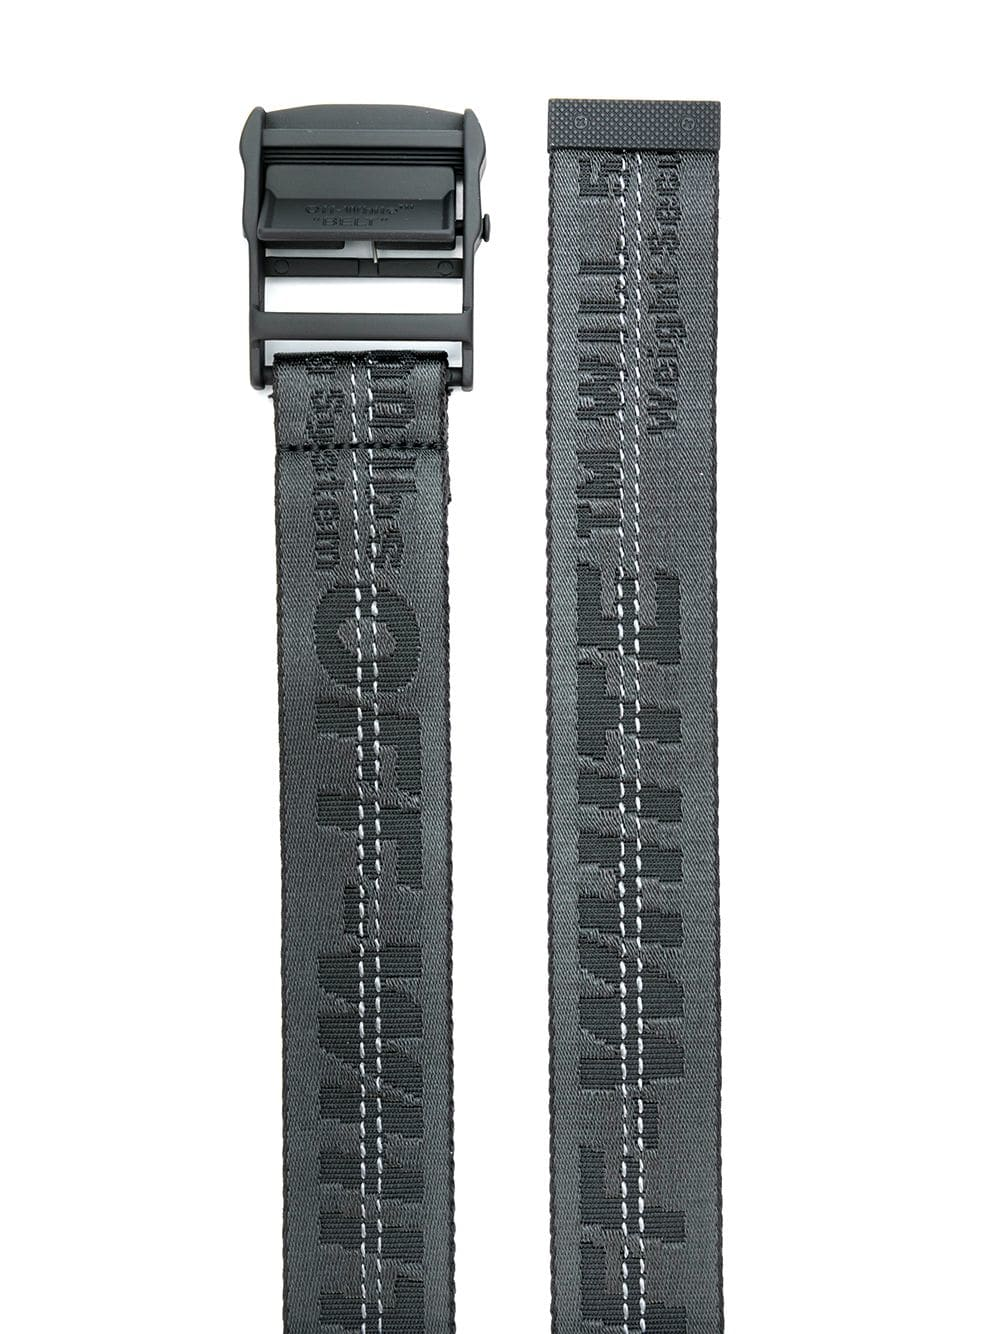 OFF-WHITE Black Industrial Belt | Off White